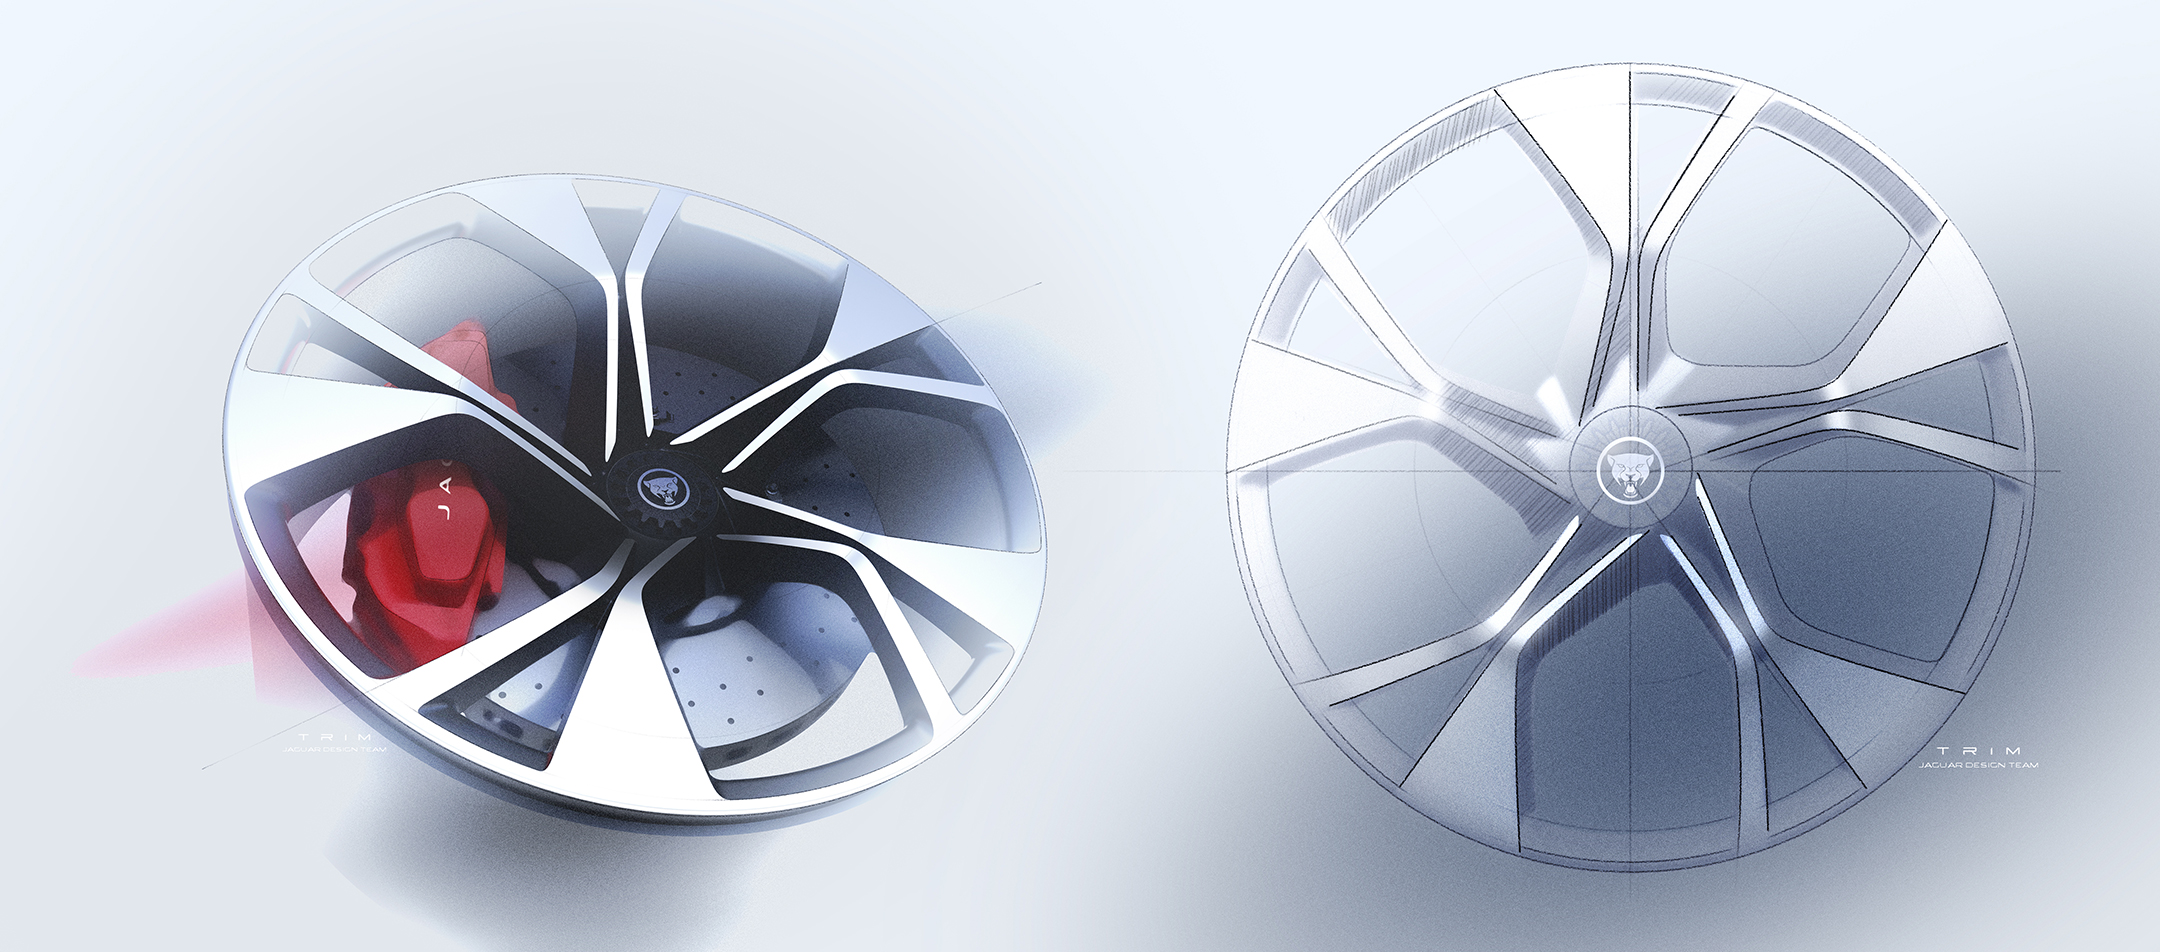 Jaguar F-TYPE - 2019 - design sketch - wheel / jante